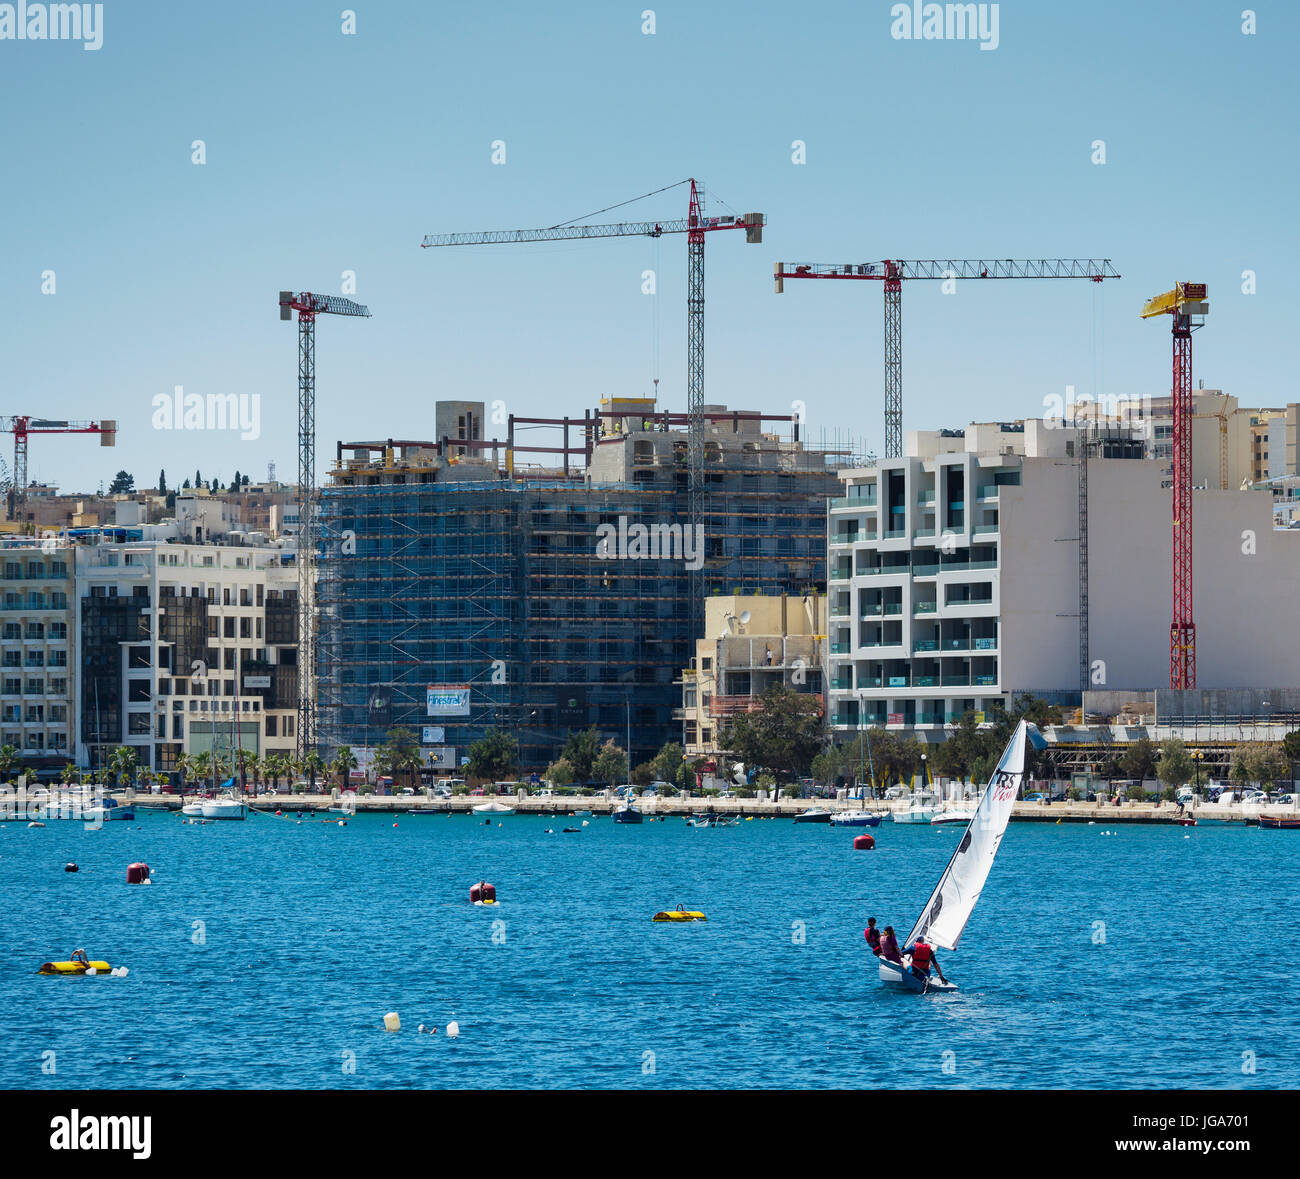 Five building cranes stand at the waterside promenade of Sliema / Malta. - Stock Image